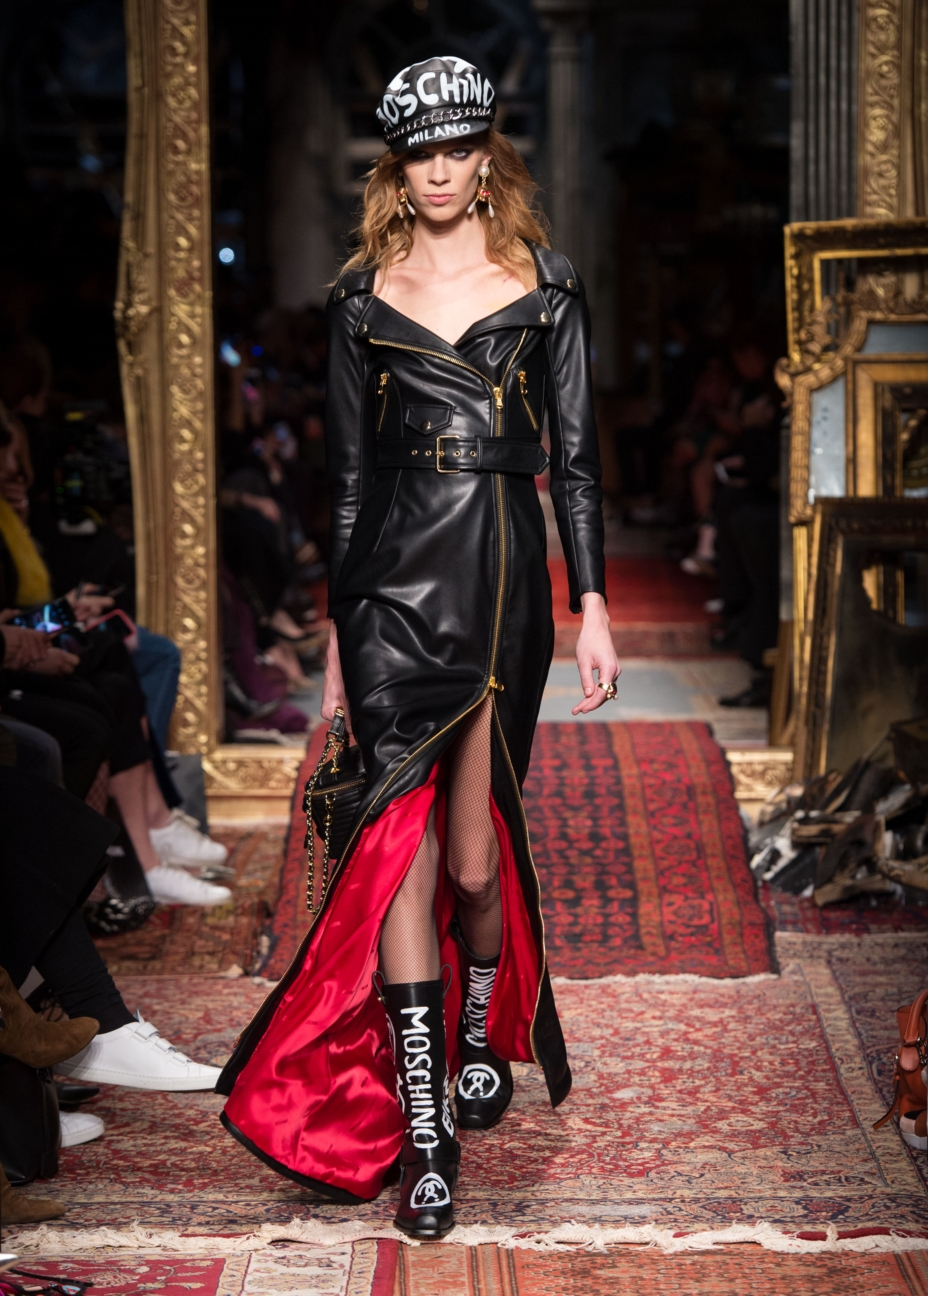 moschino-milan-fashion-week-aw-16